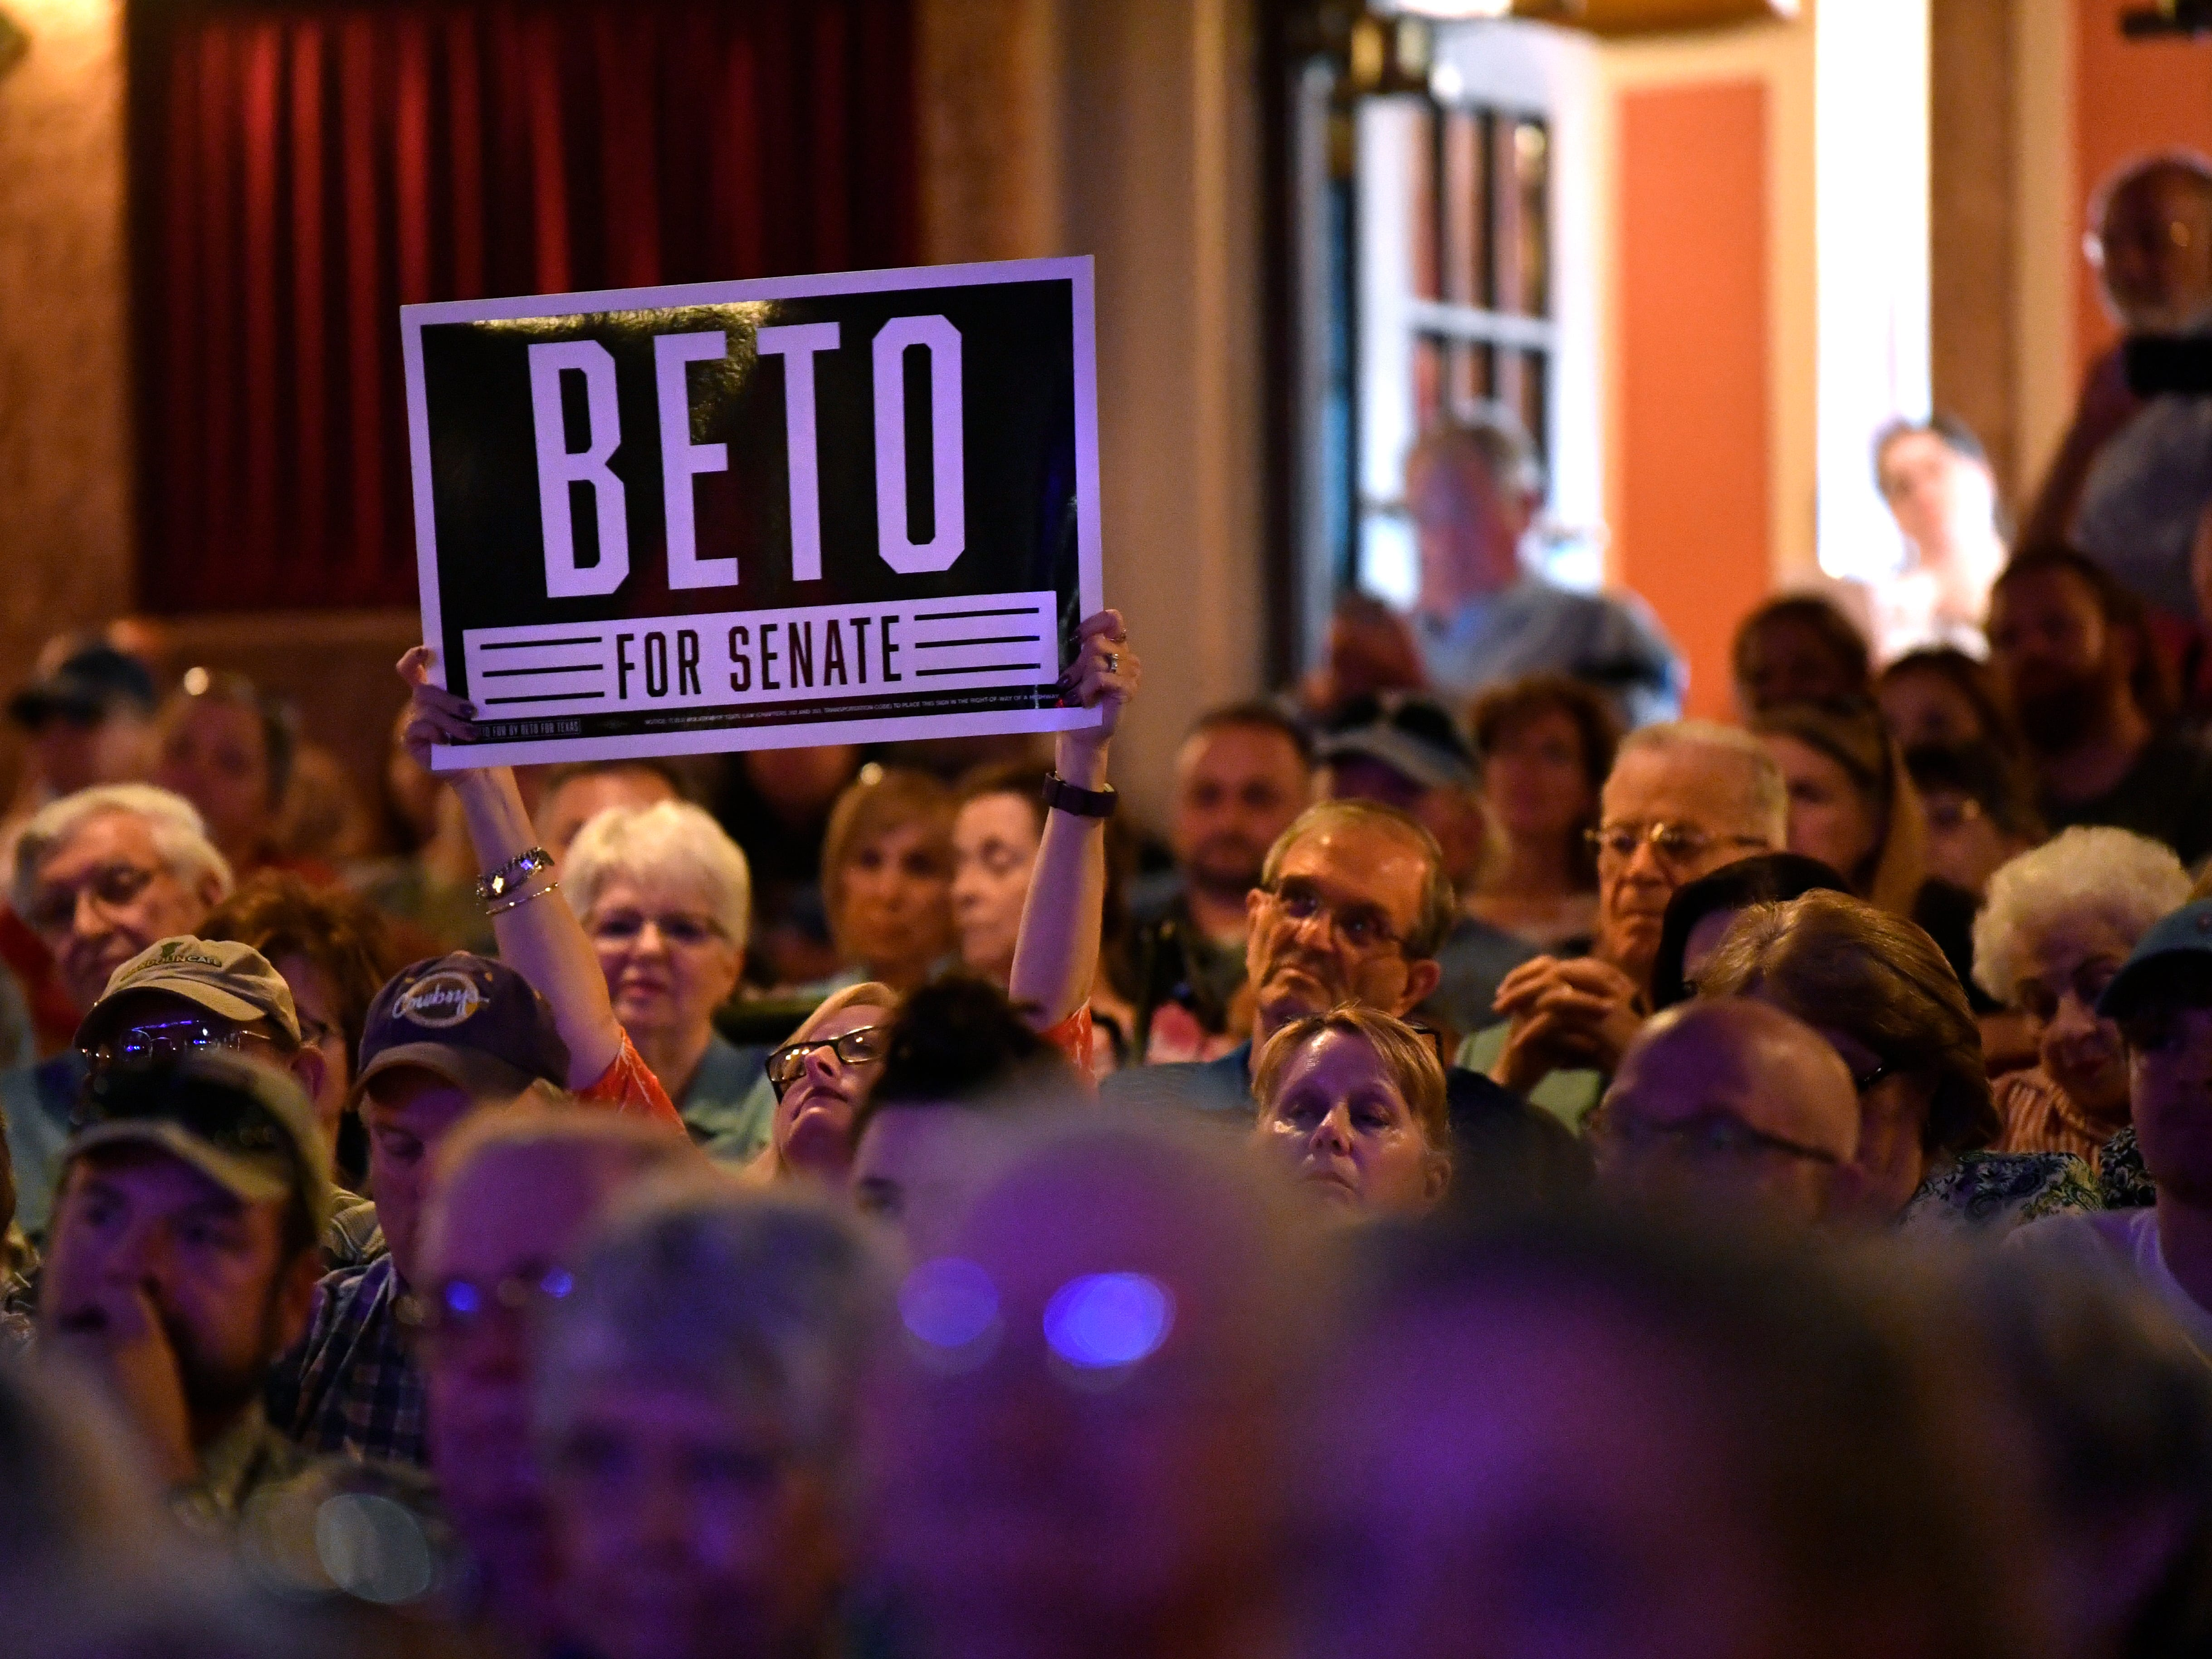 An audience member holds up a sign supporting U.S. Senate candidate Beto O'Rourke Thursday August 2, 2018 at the Paramount Theatre. O'Rourke's bid to unseat Republican Ted Cruz is one of the most closely-watched races in the country, he and four other Democratic candidates spoke to a crowd of nearly 800 people.